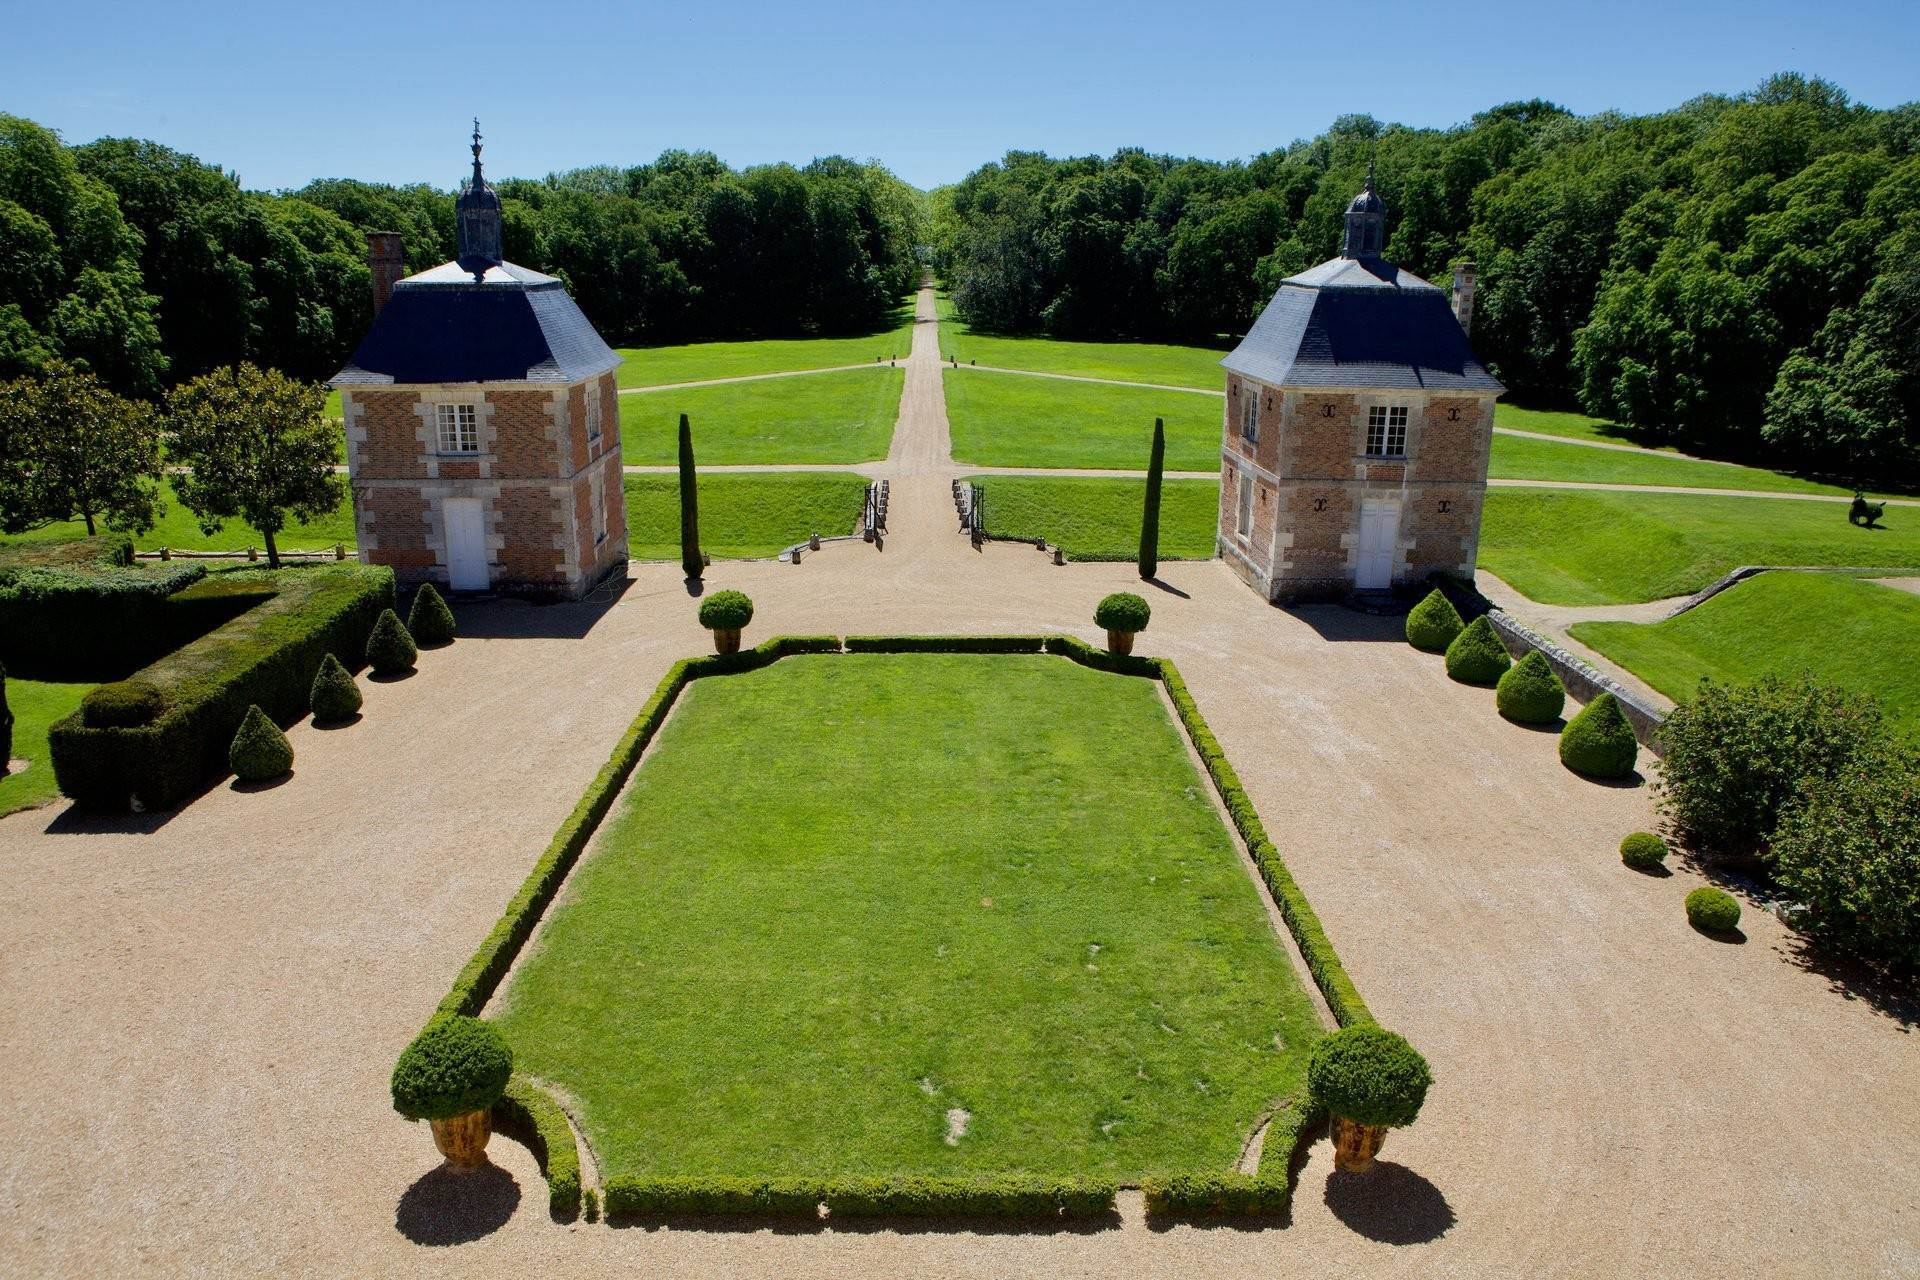 9. Ville / Villette per Vendita alle ore An exceptional listed Louis XIII style chateau set in 40 enclosed hectares with formal French gardens. An architectural gem Blois, Loir et Cher,41000 Francia